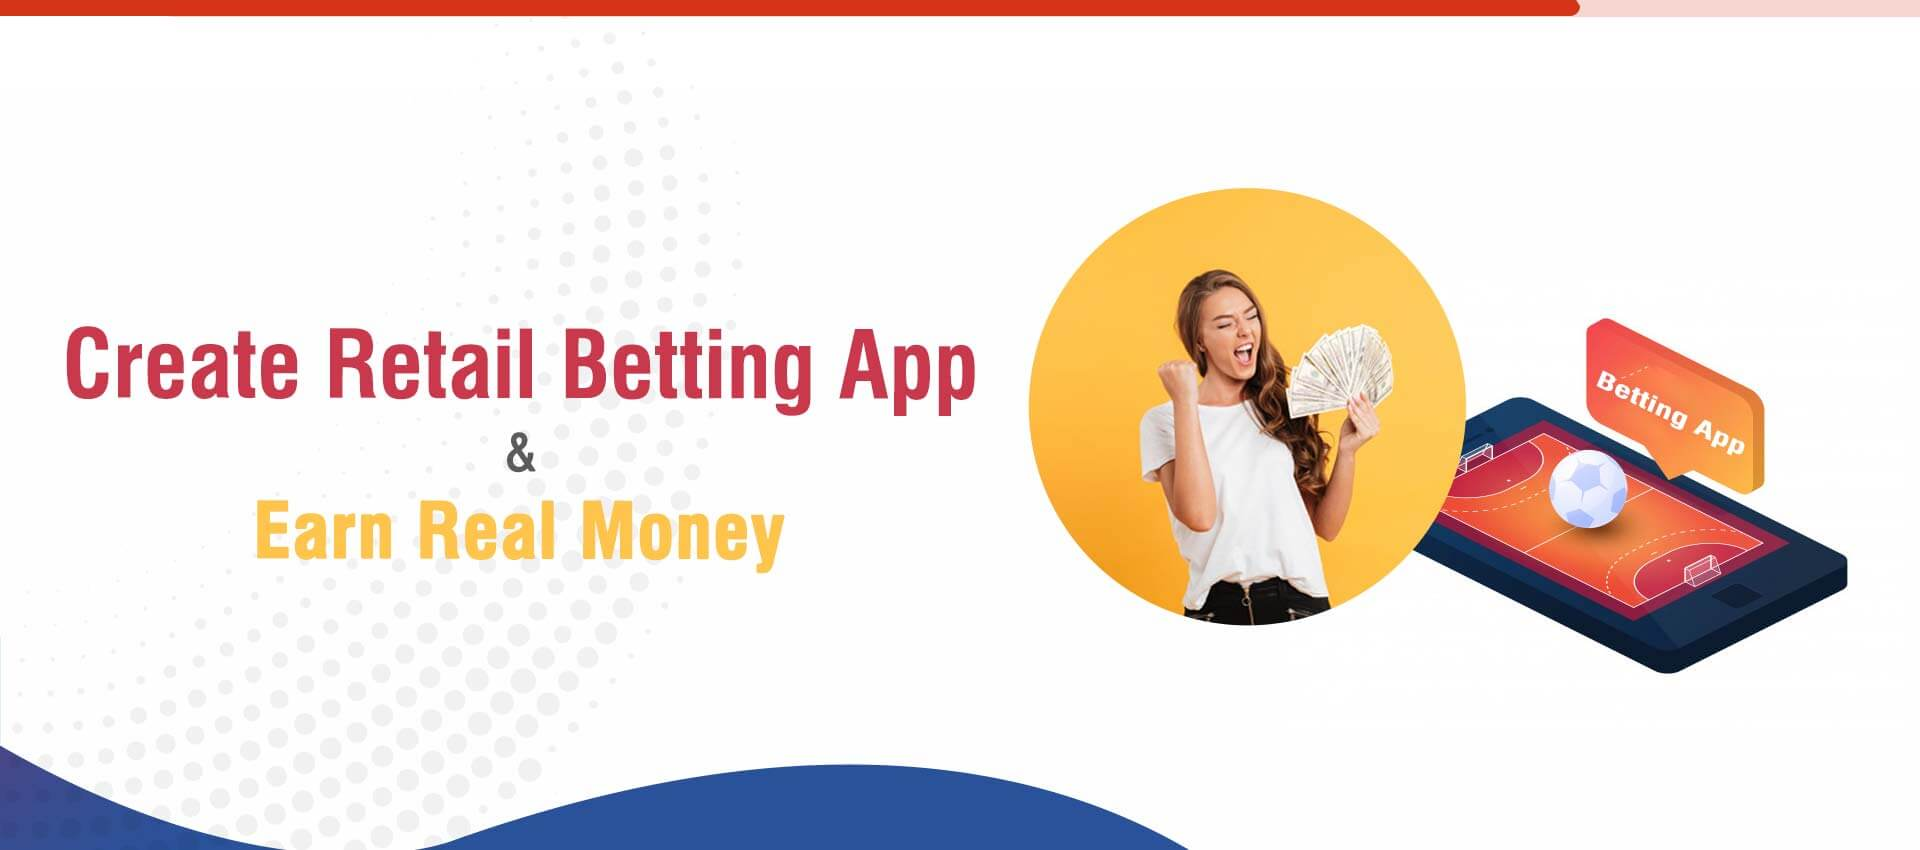 How to Earn Real Money by Creating a Retail Betting Application?